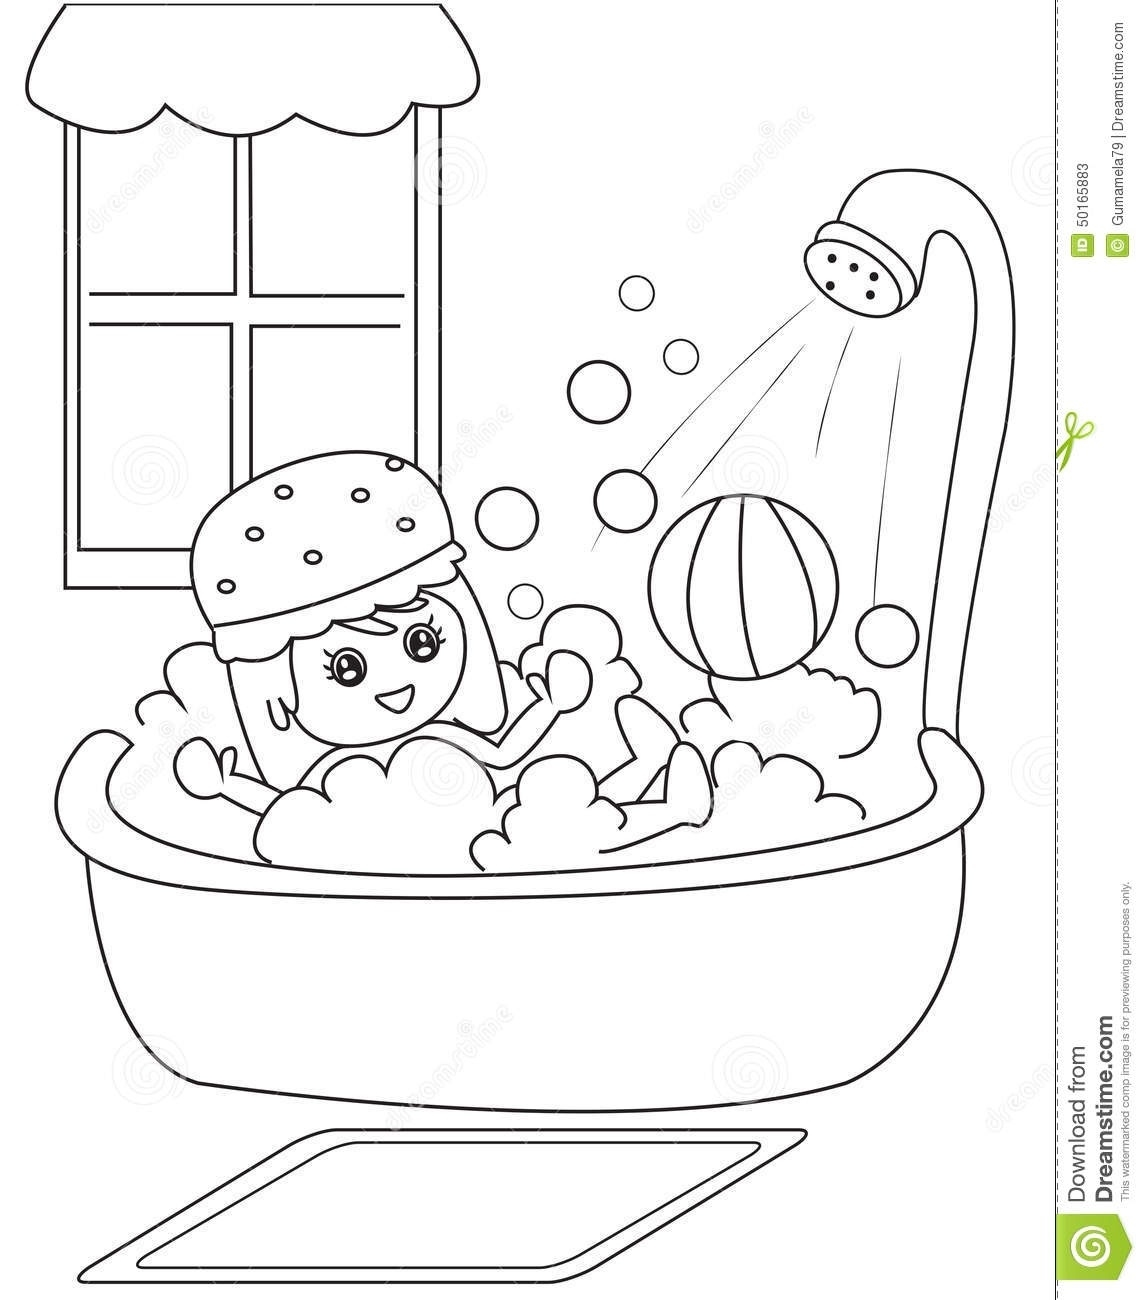 Take a shower clipart black and white clip art library library Clipart Of Black Boy Taking A Shower – Clipground for Taking ... clip art library library